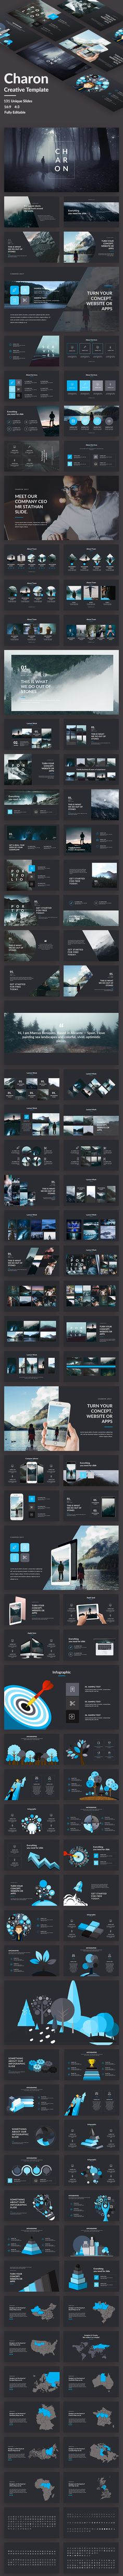 Charon Creative Powerpoint Template — Powerpoint PPT #1280x720 #animation • Download ➝ https://graphicriver.net/item/charon-creative-powerpoint-template/20501978?ref=pxcr